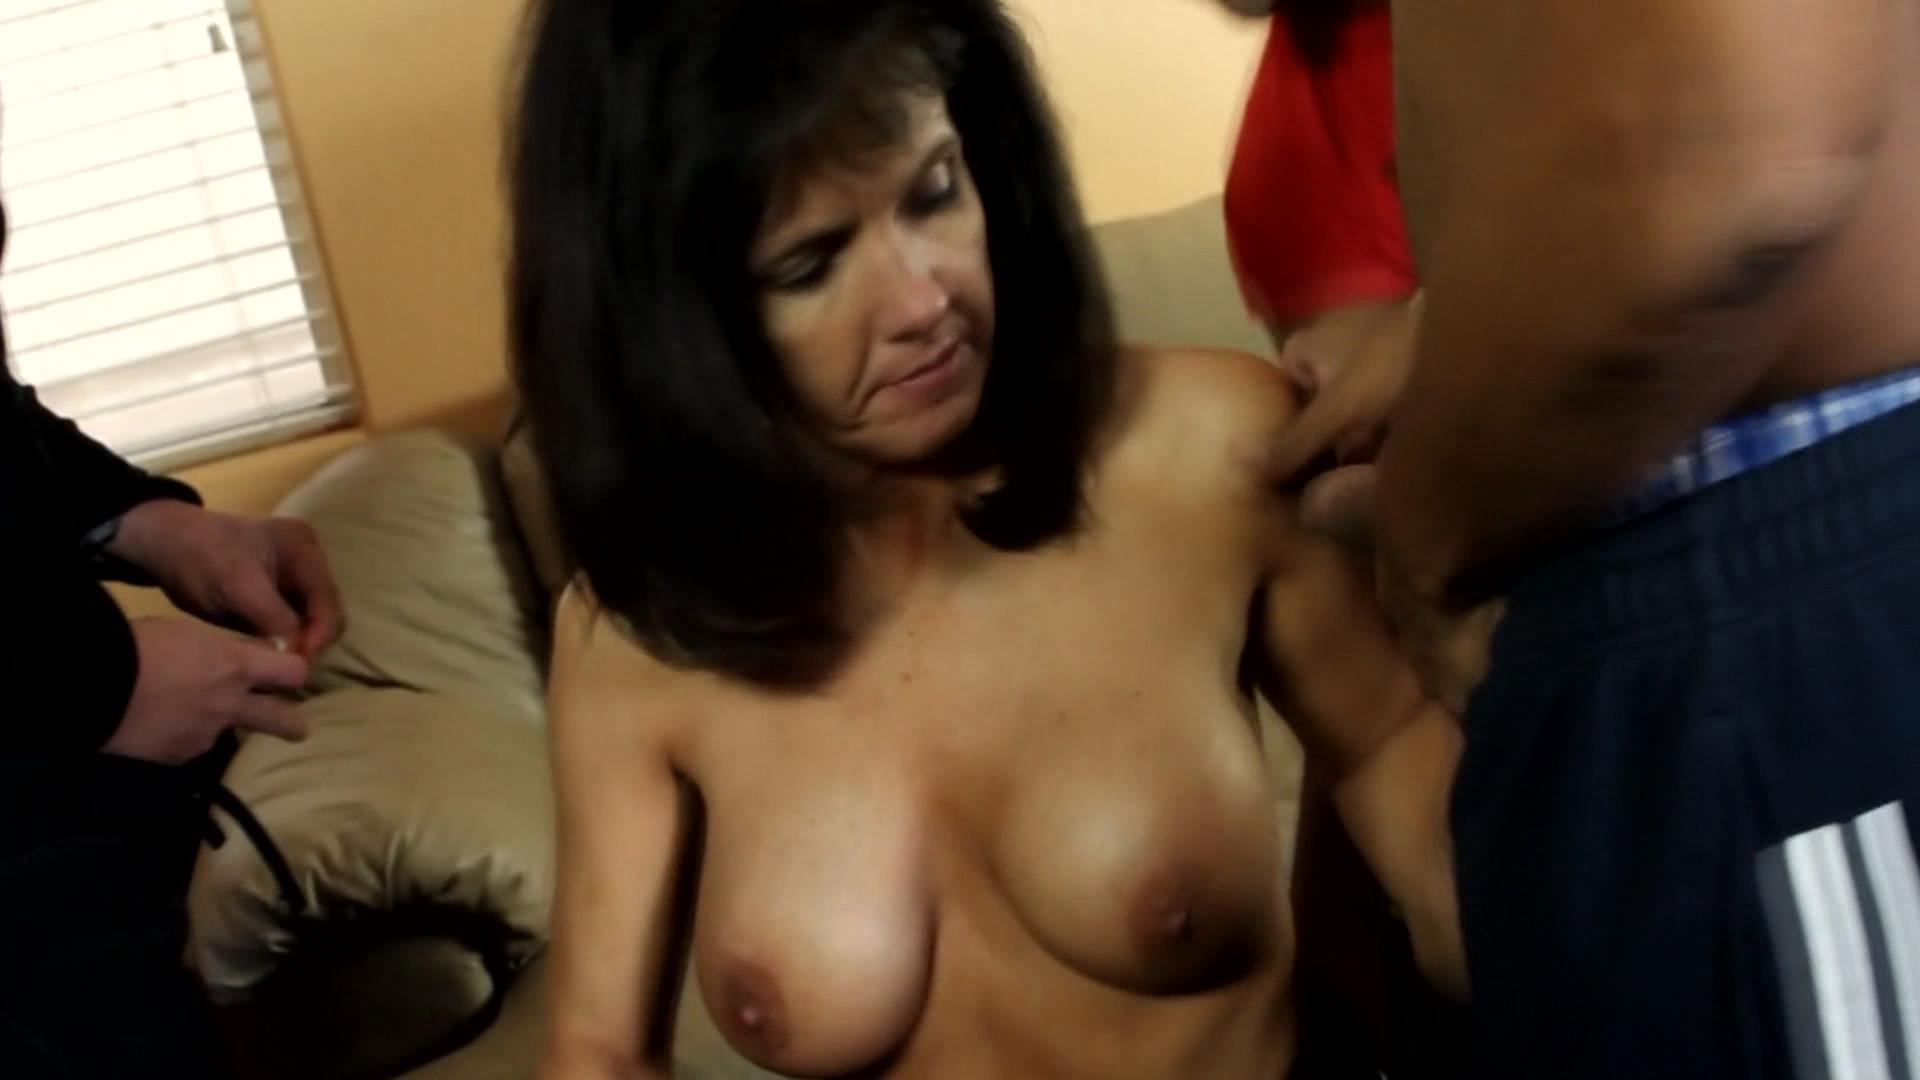 Gangbanged By Six Guys xvideos164624